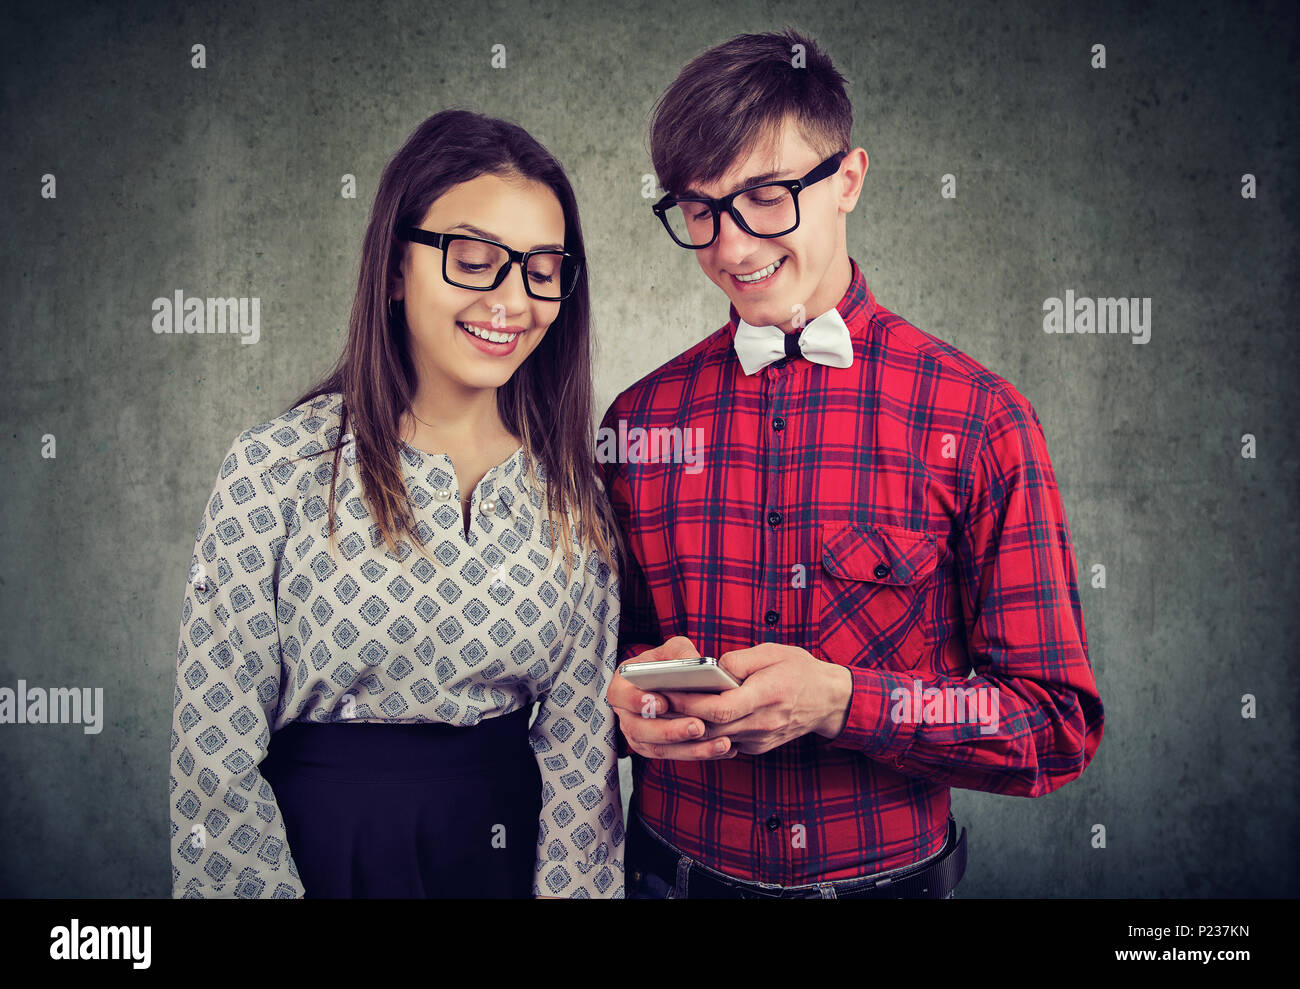 [Image: happy-eccentic-hipster-guy-holding-smart...P237KN.jpg]